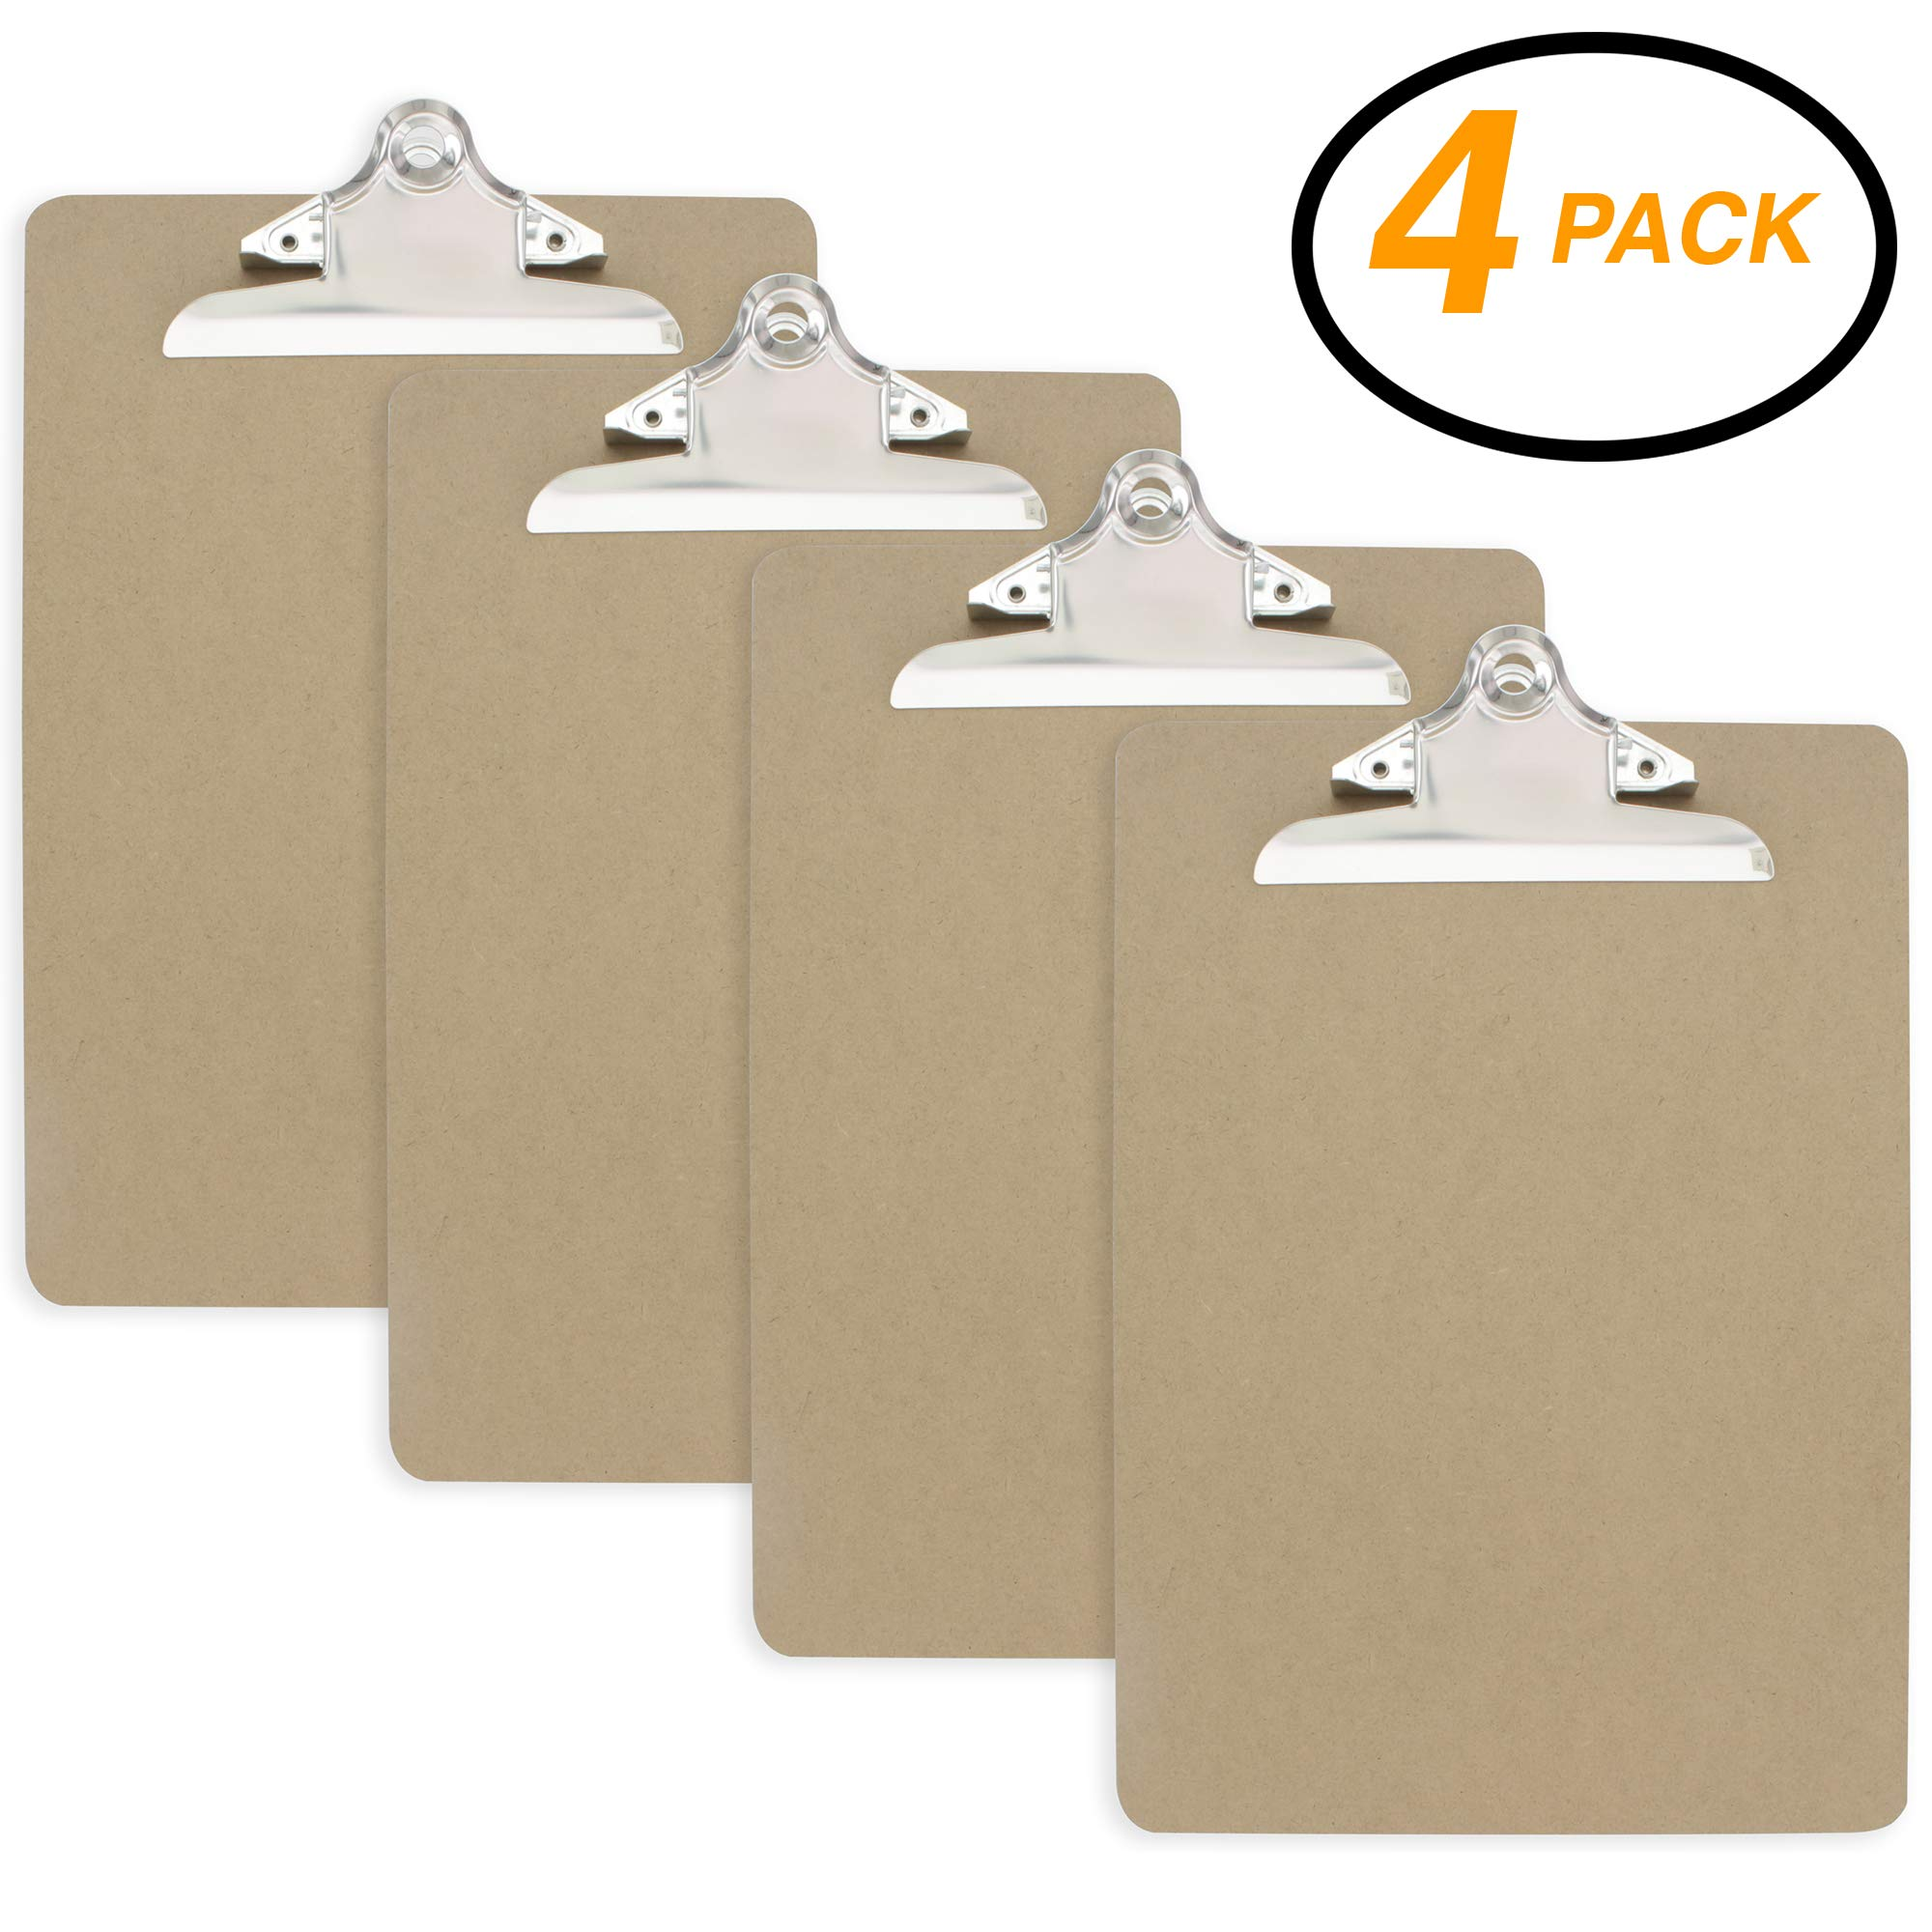 Emraw Standard Size Wooden Clipboards Flat Hanging Hardboard Set with Extra Secure Sturdy Spring Clip for School, Office, Work, Home, Hospital - 4 Pack